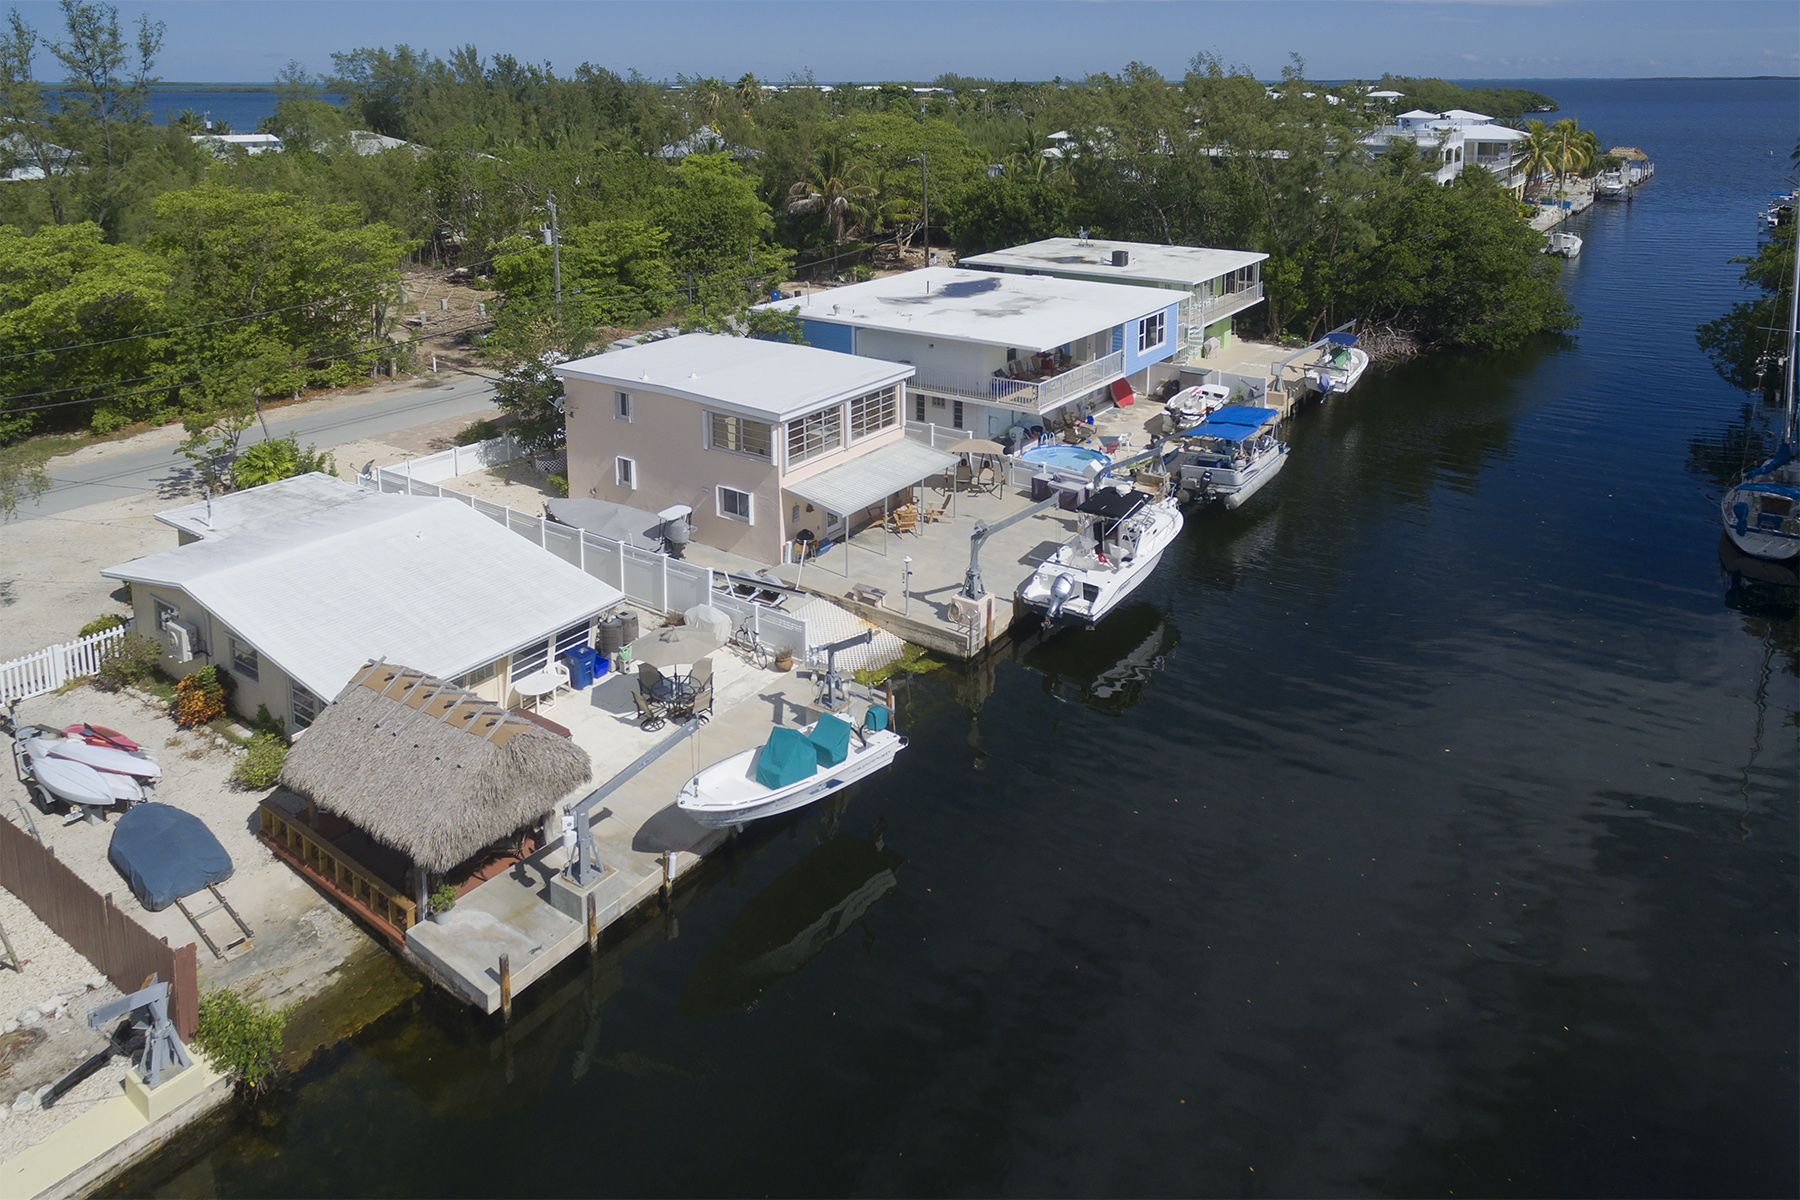 Villa per Vendita alle ore Ground Level Canalfront Home 28 Jean La Fitte Drive Key Largo, Florida, 33037 Stati Uniti